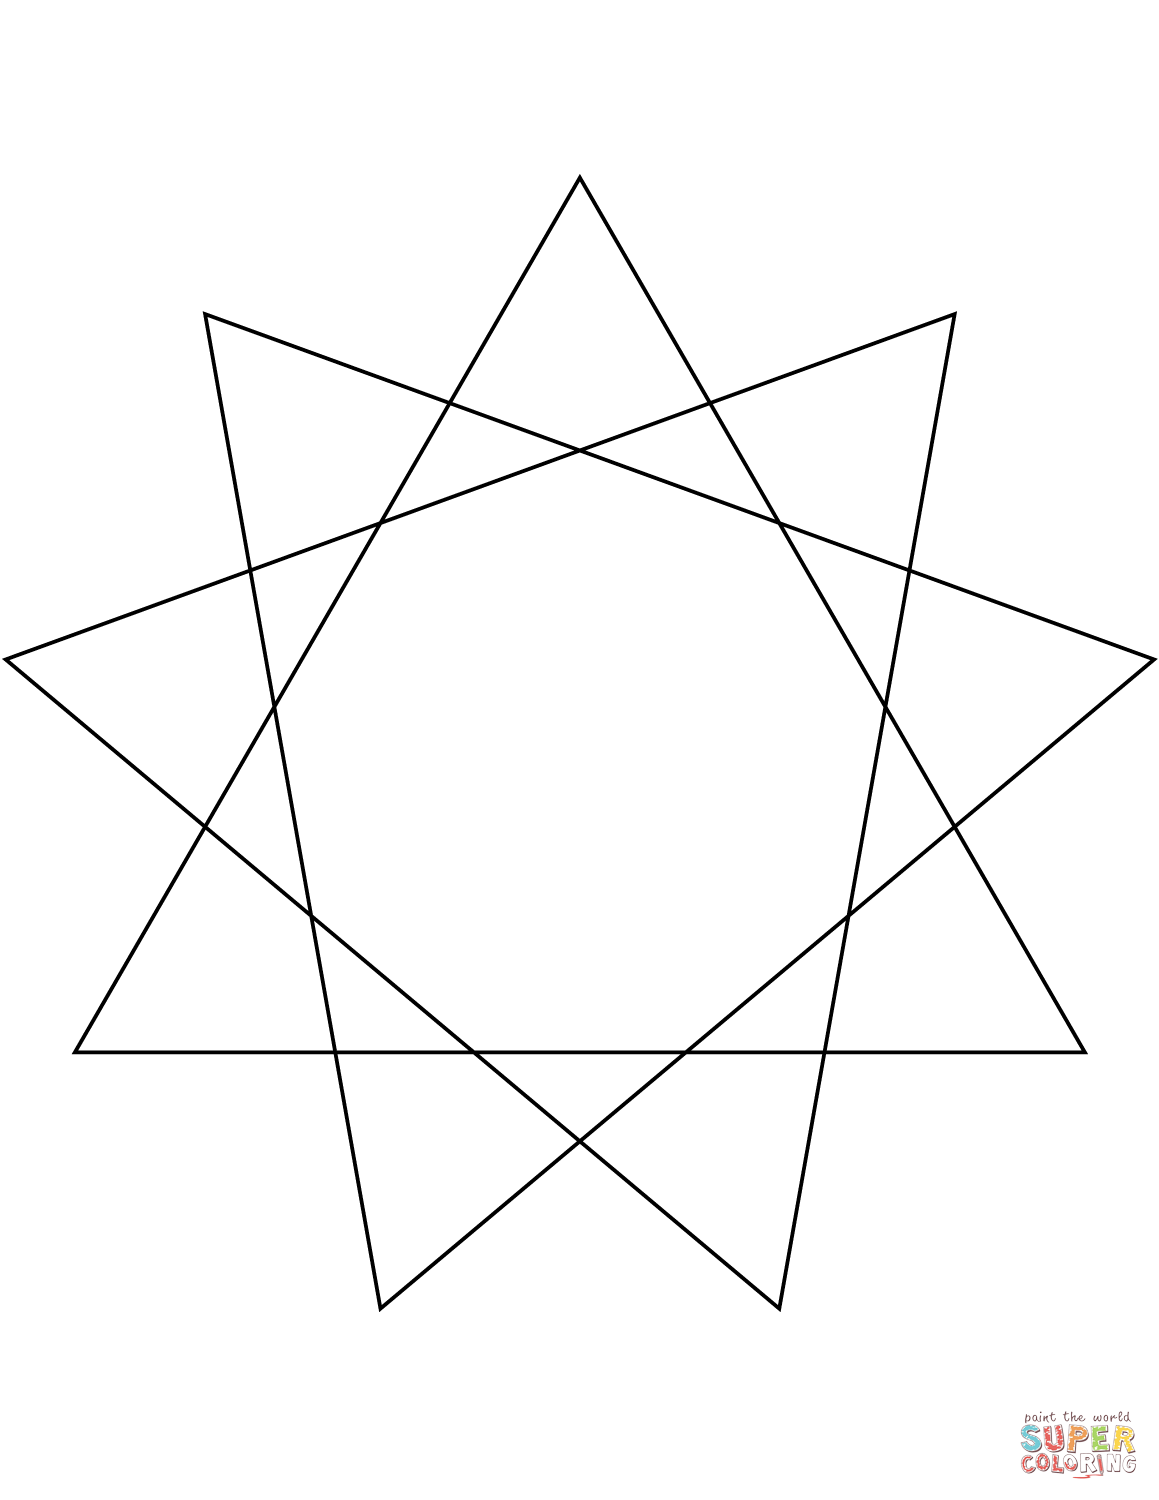 9 Point Star Coloring Page